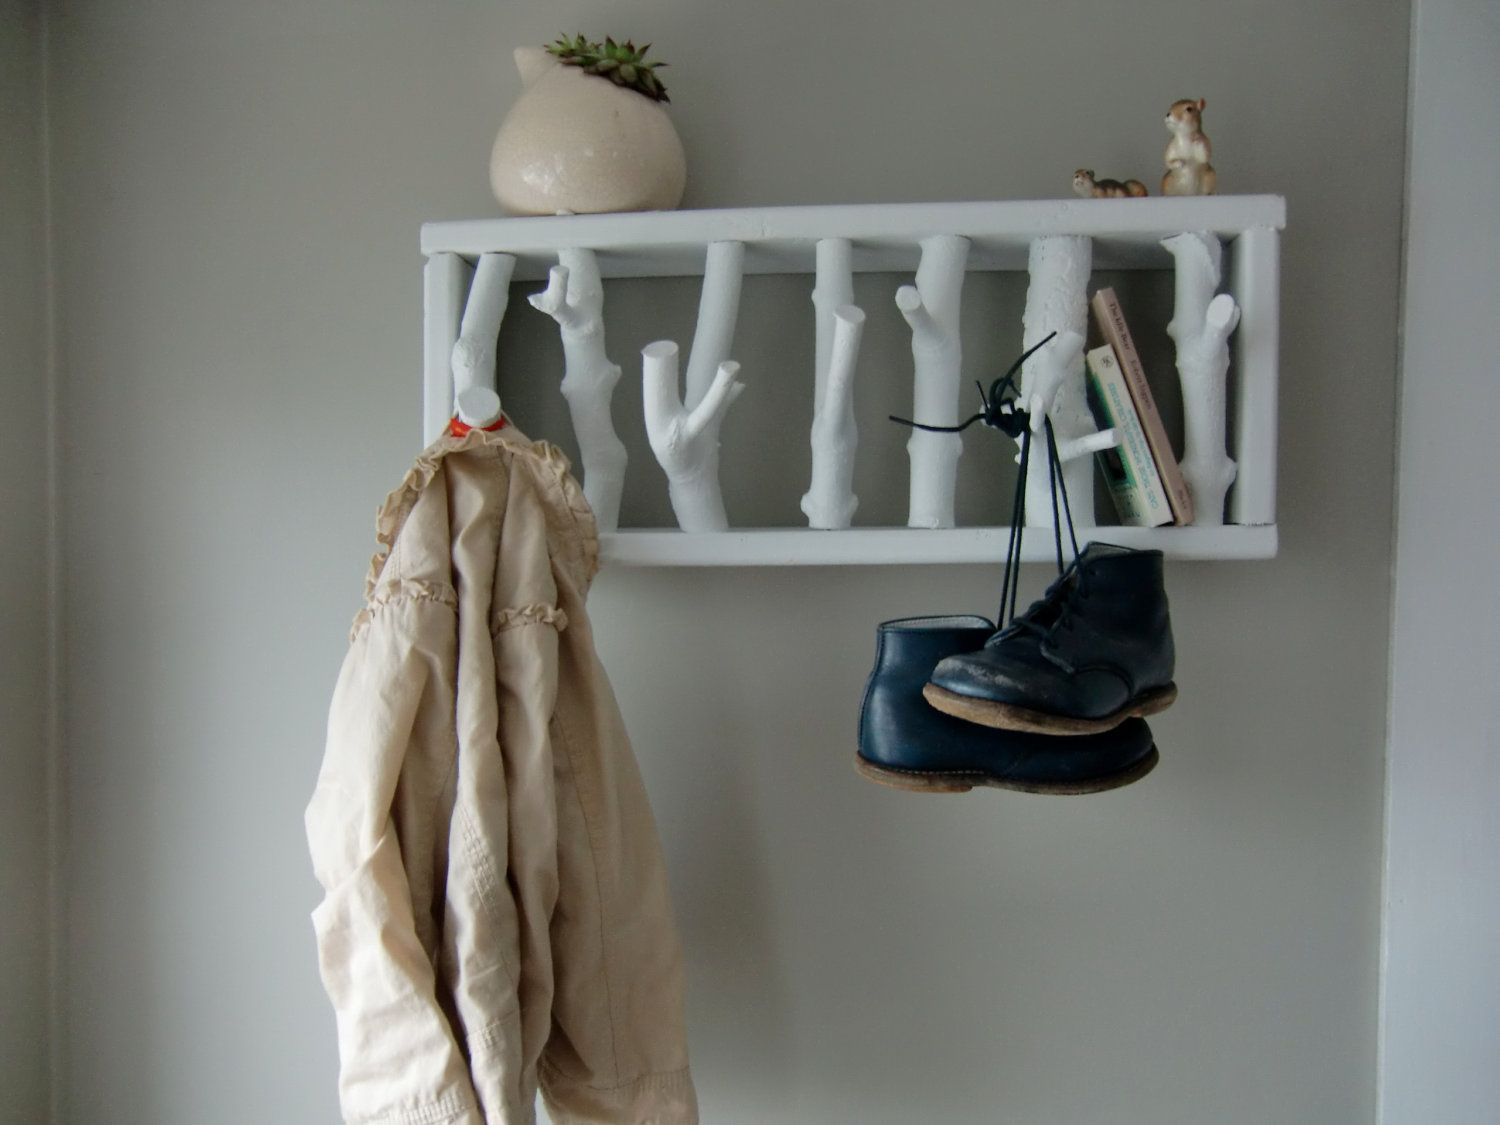 LET'S STAY: Creative coat rack design